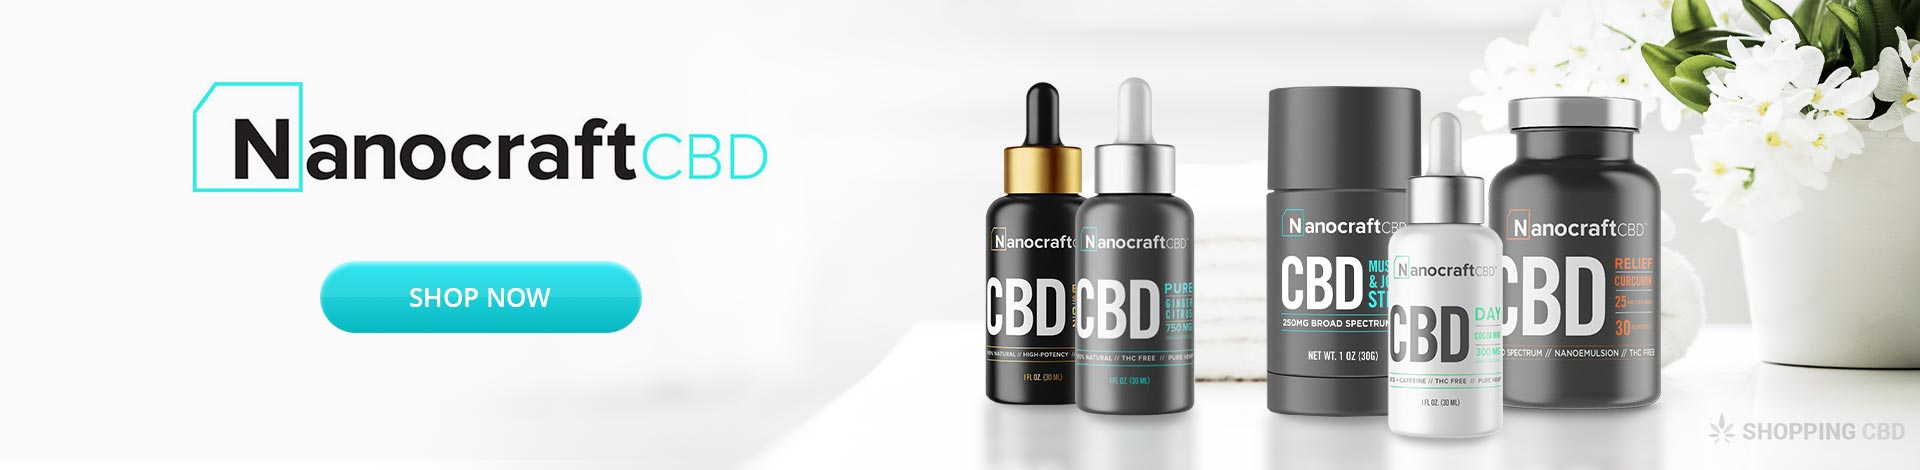 Nanocraft CBD | Products and More